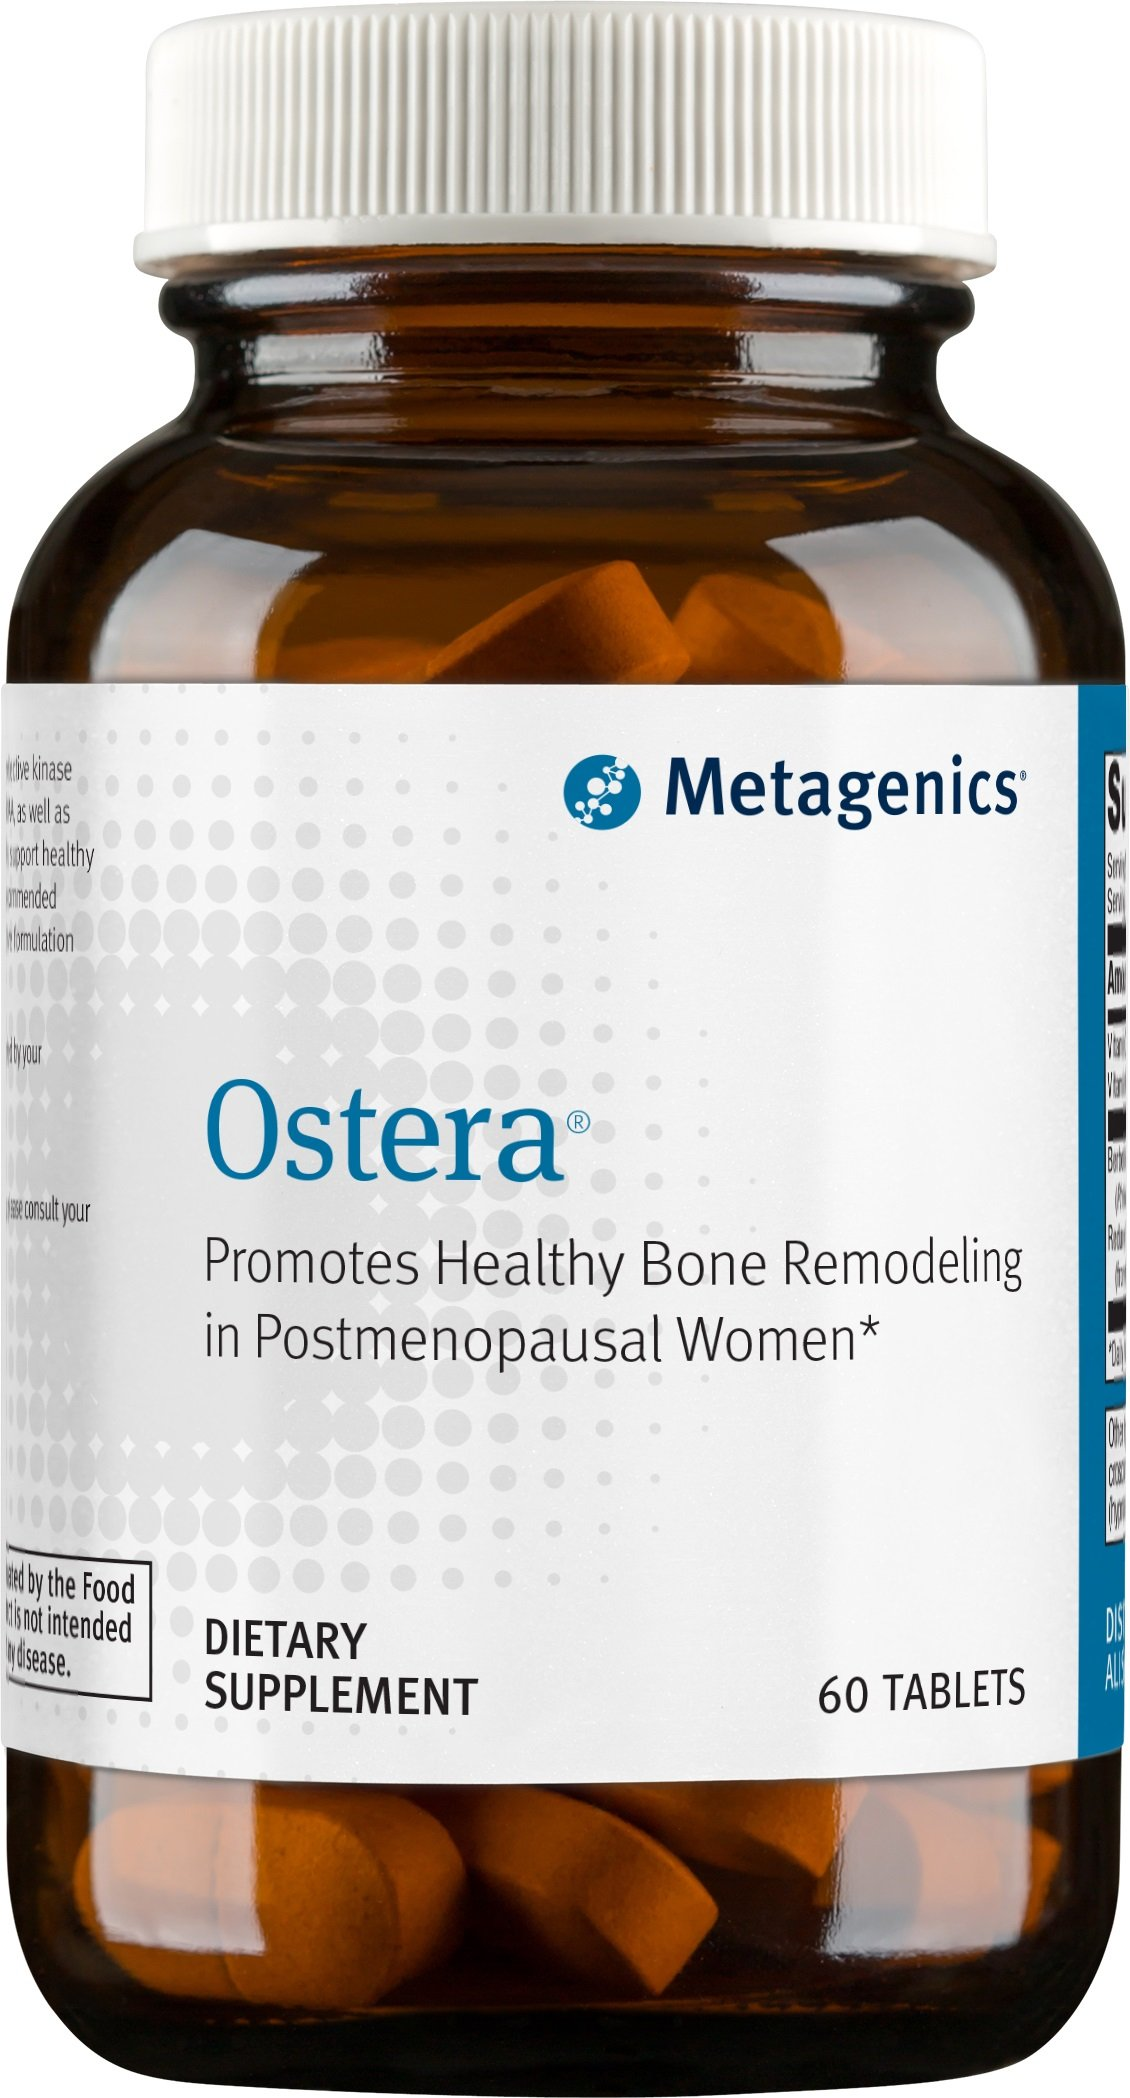 Metagenics - Ostera, 60 Count